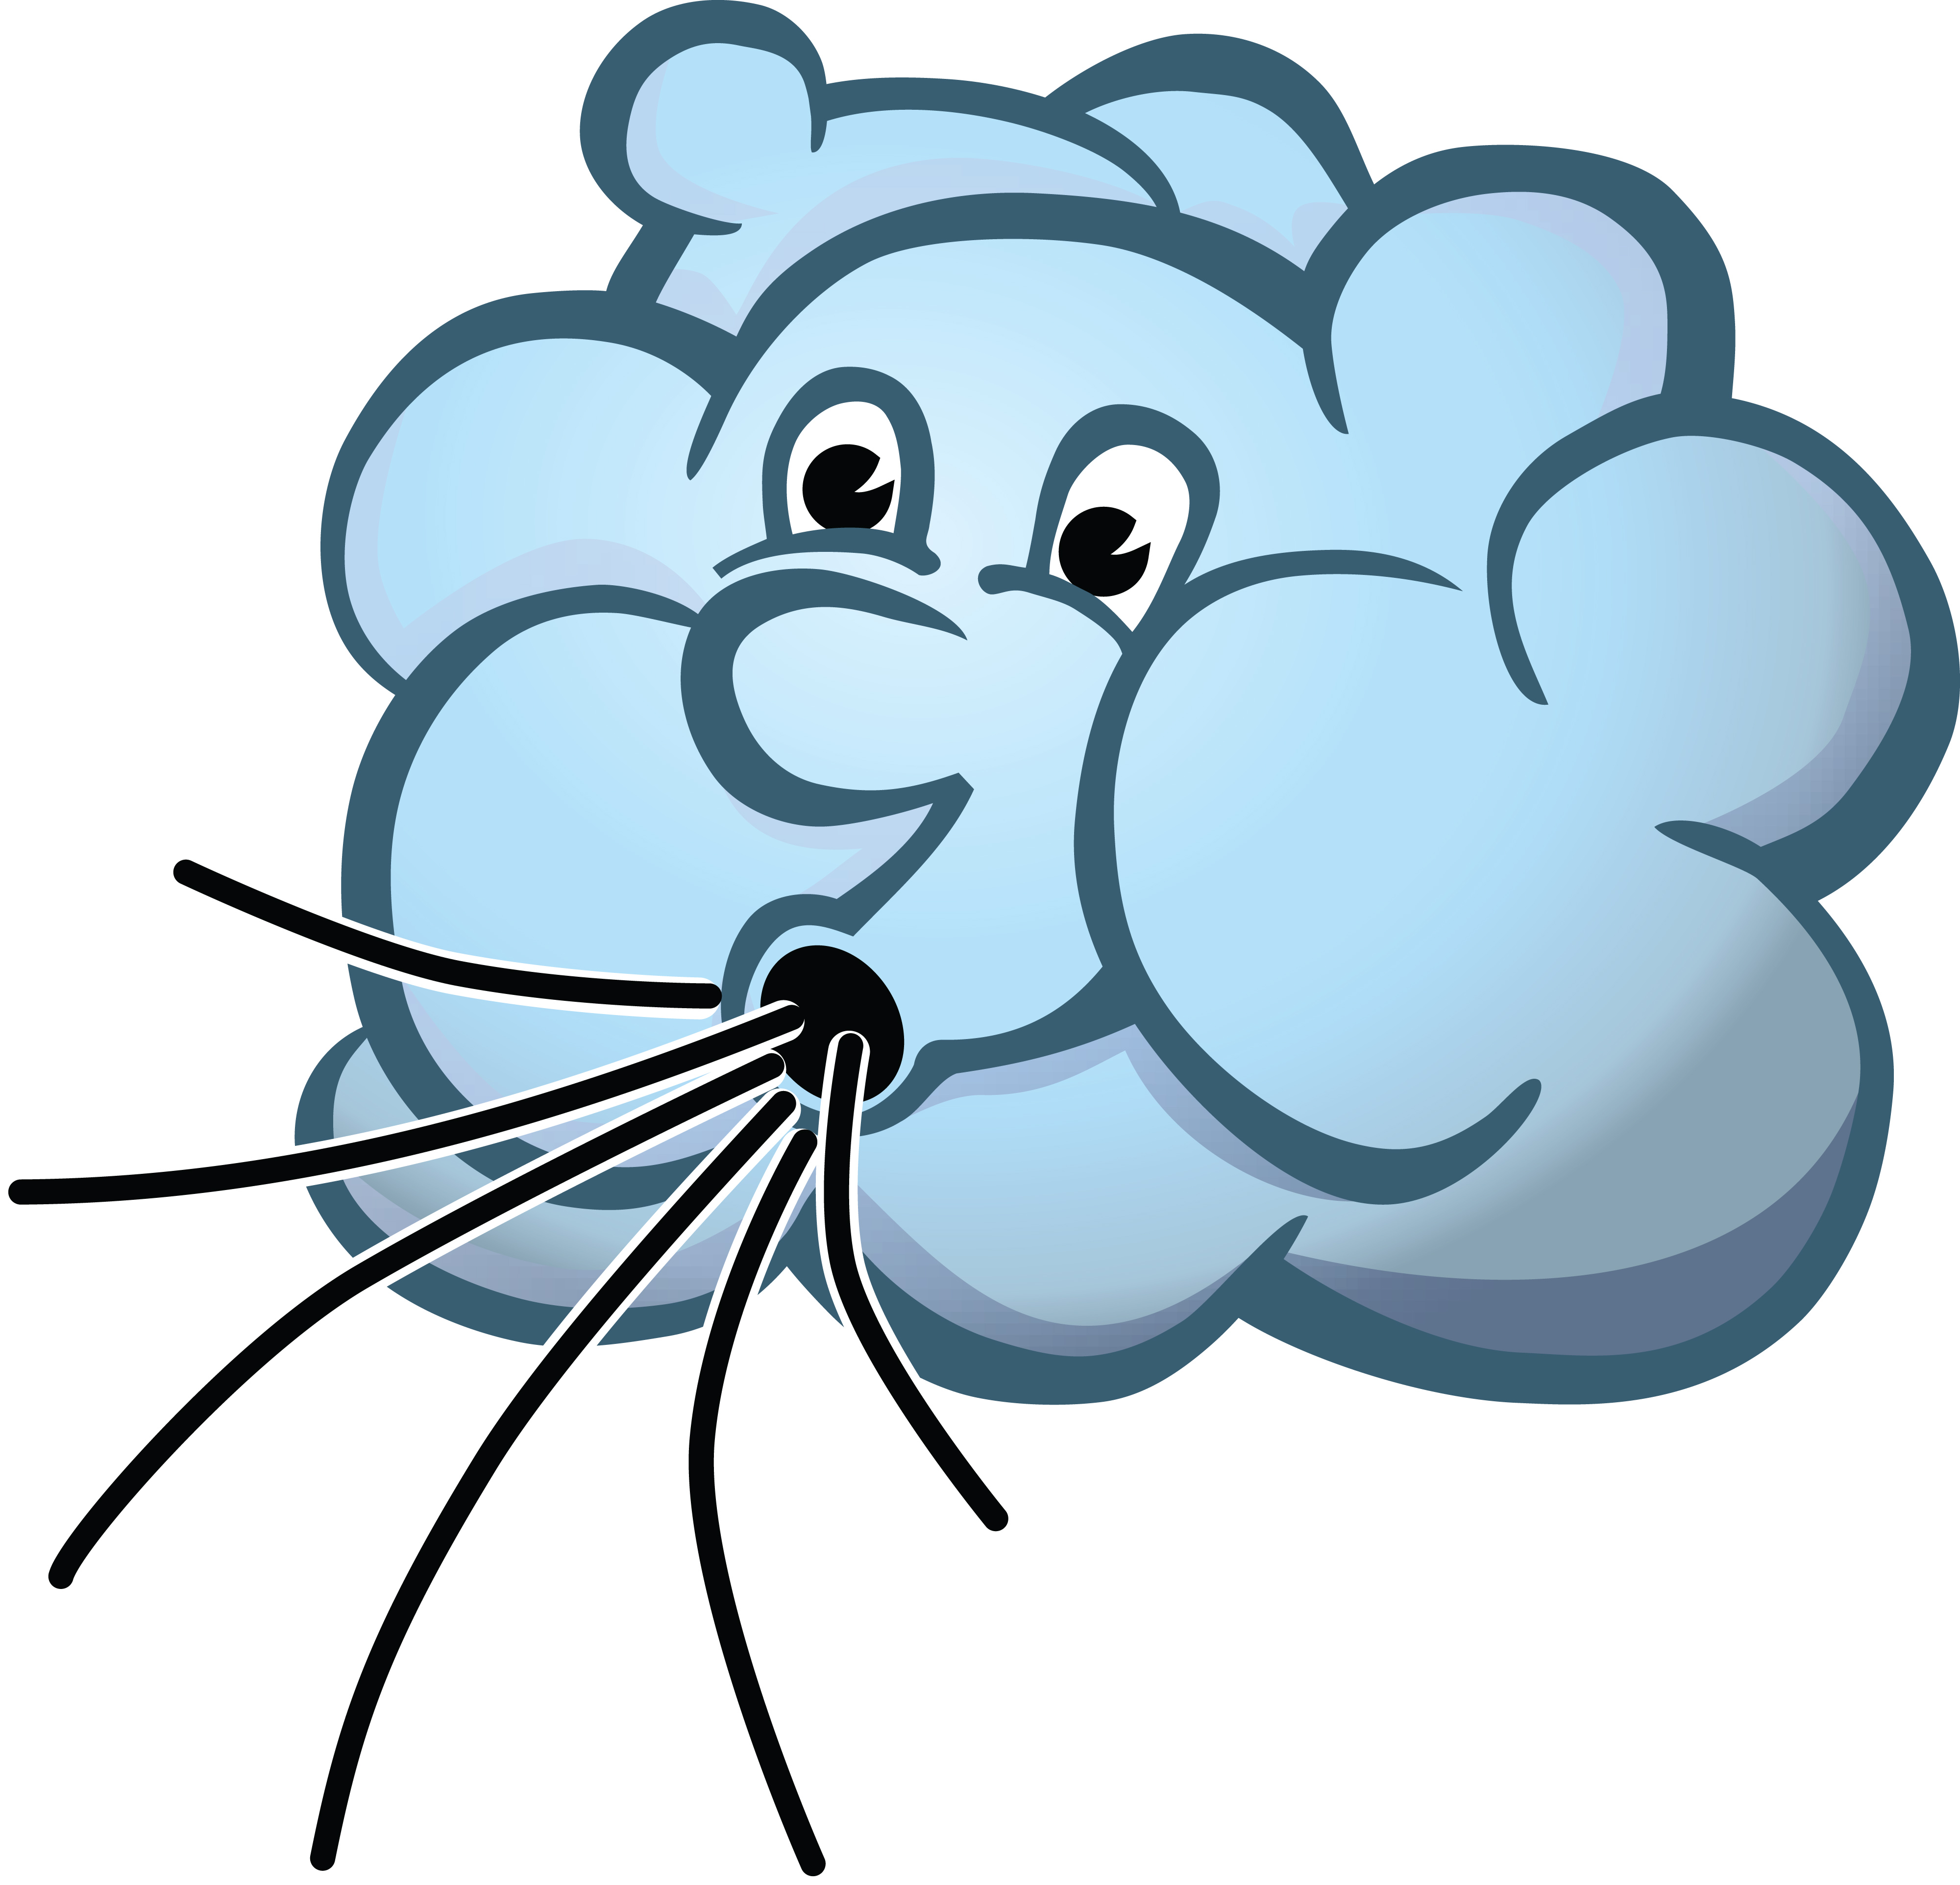 Free Clipart Of A cloud blowing wind.